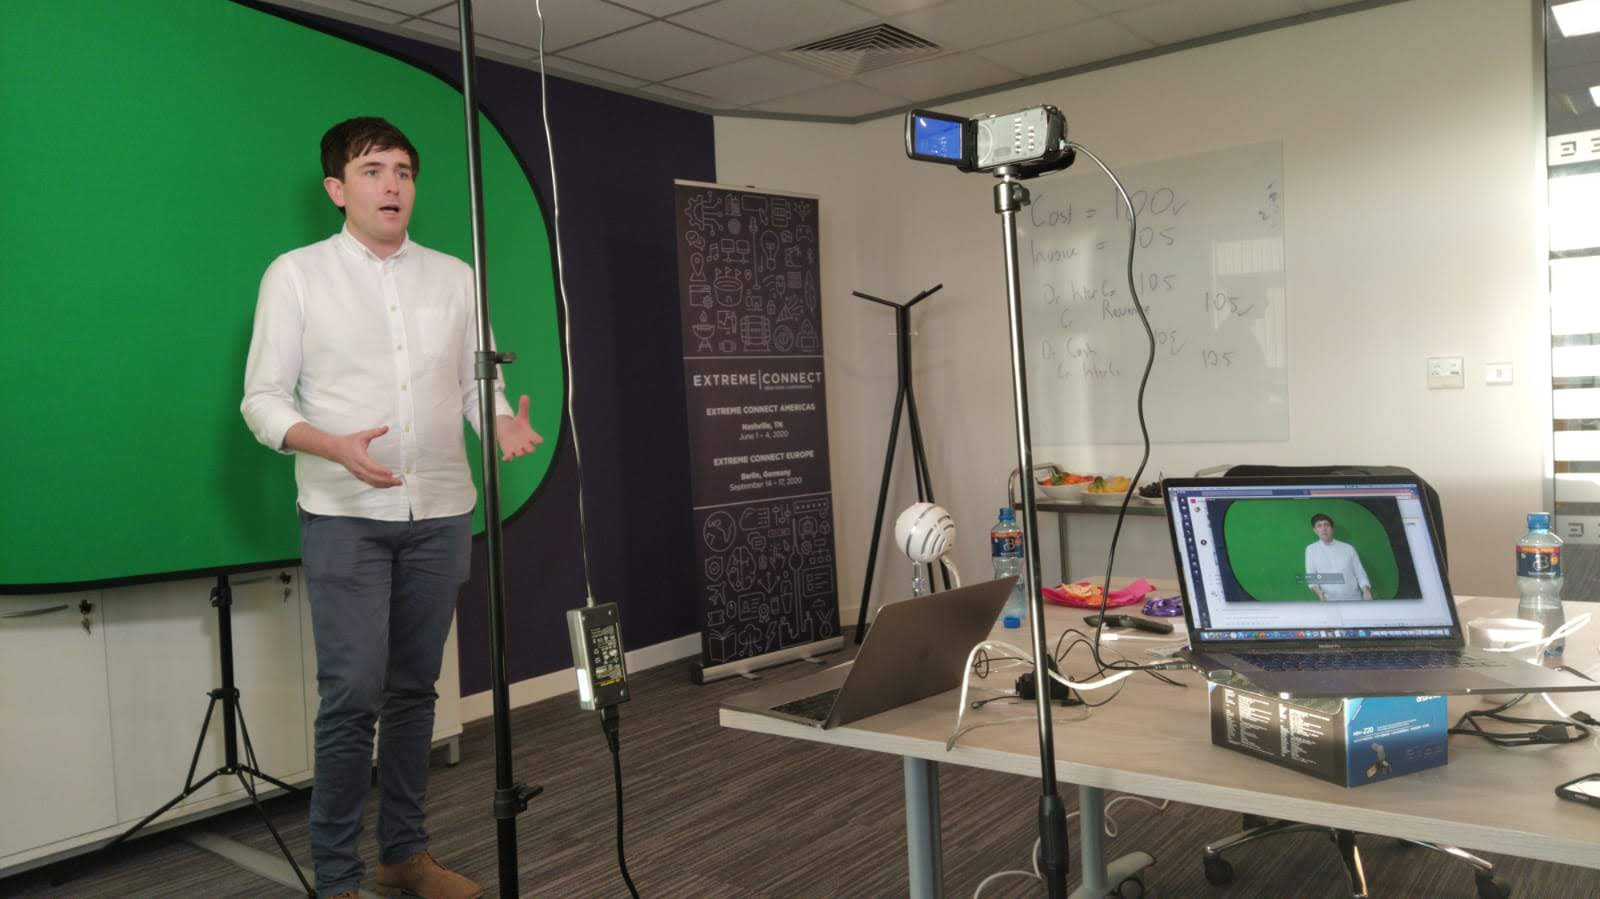 Donagh Horgan recording a video in the Shannon office.